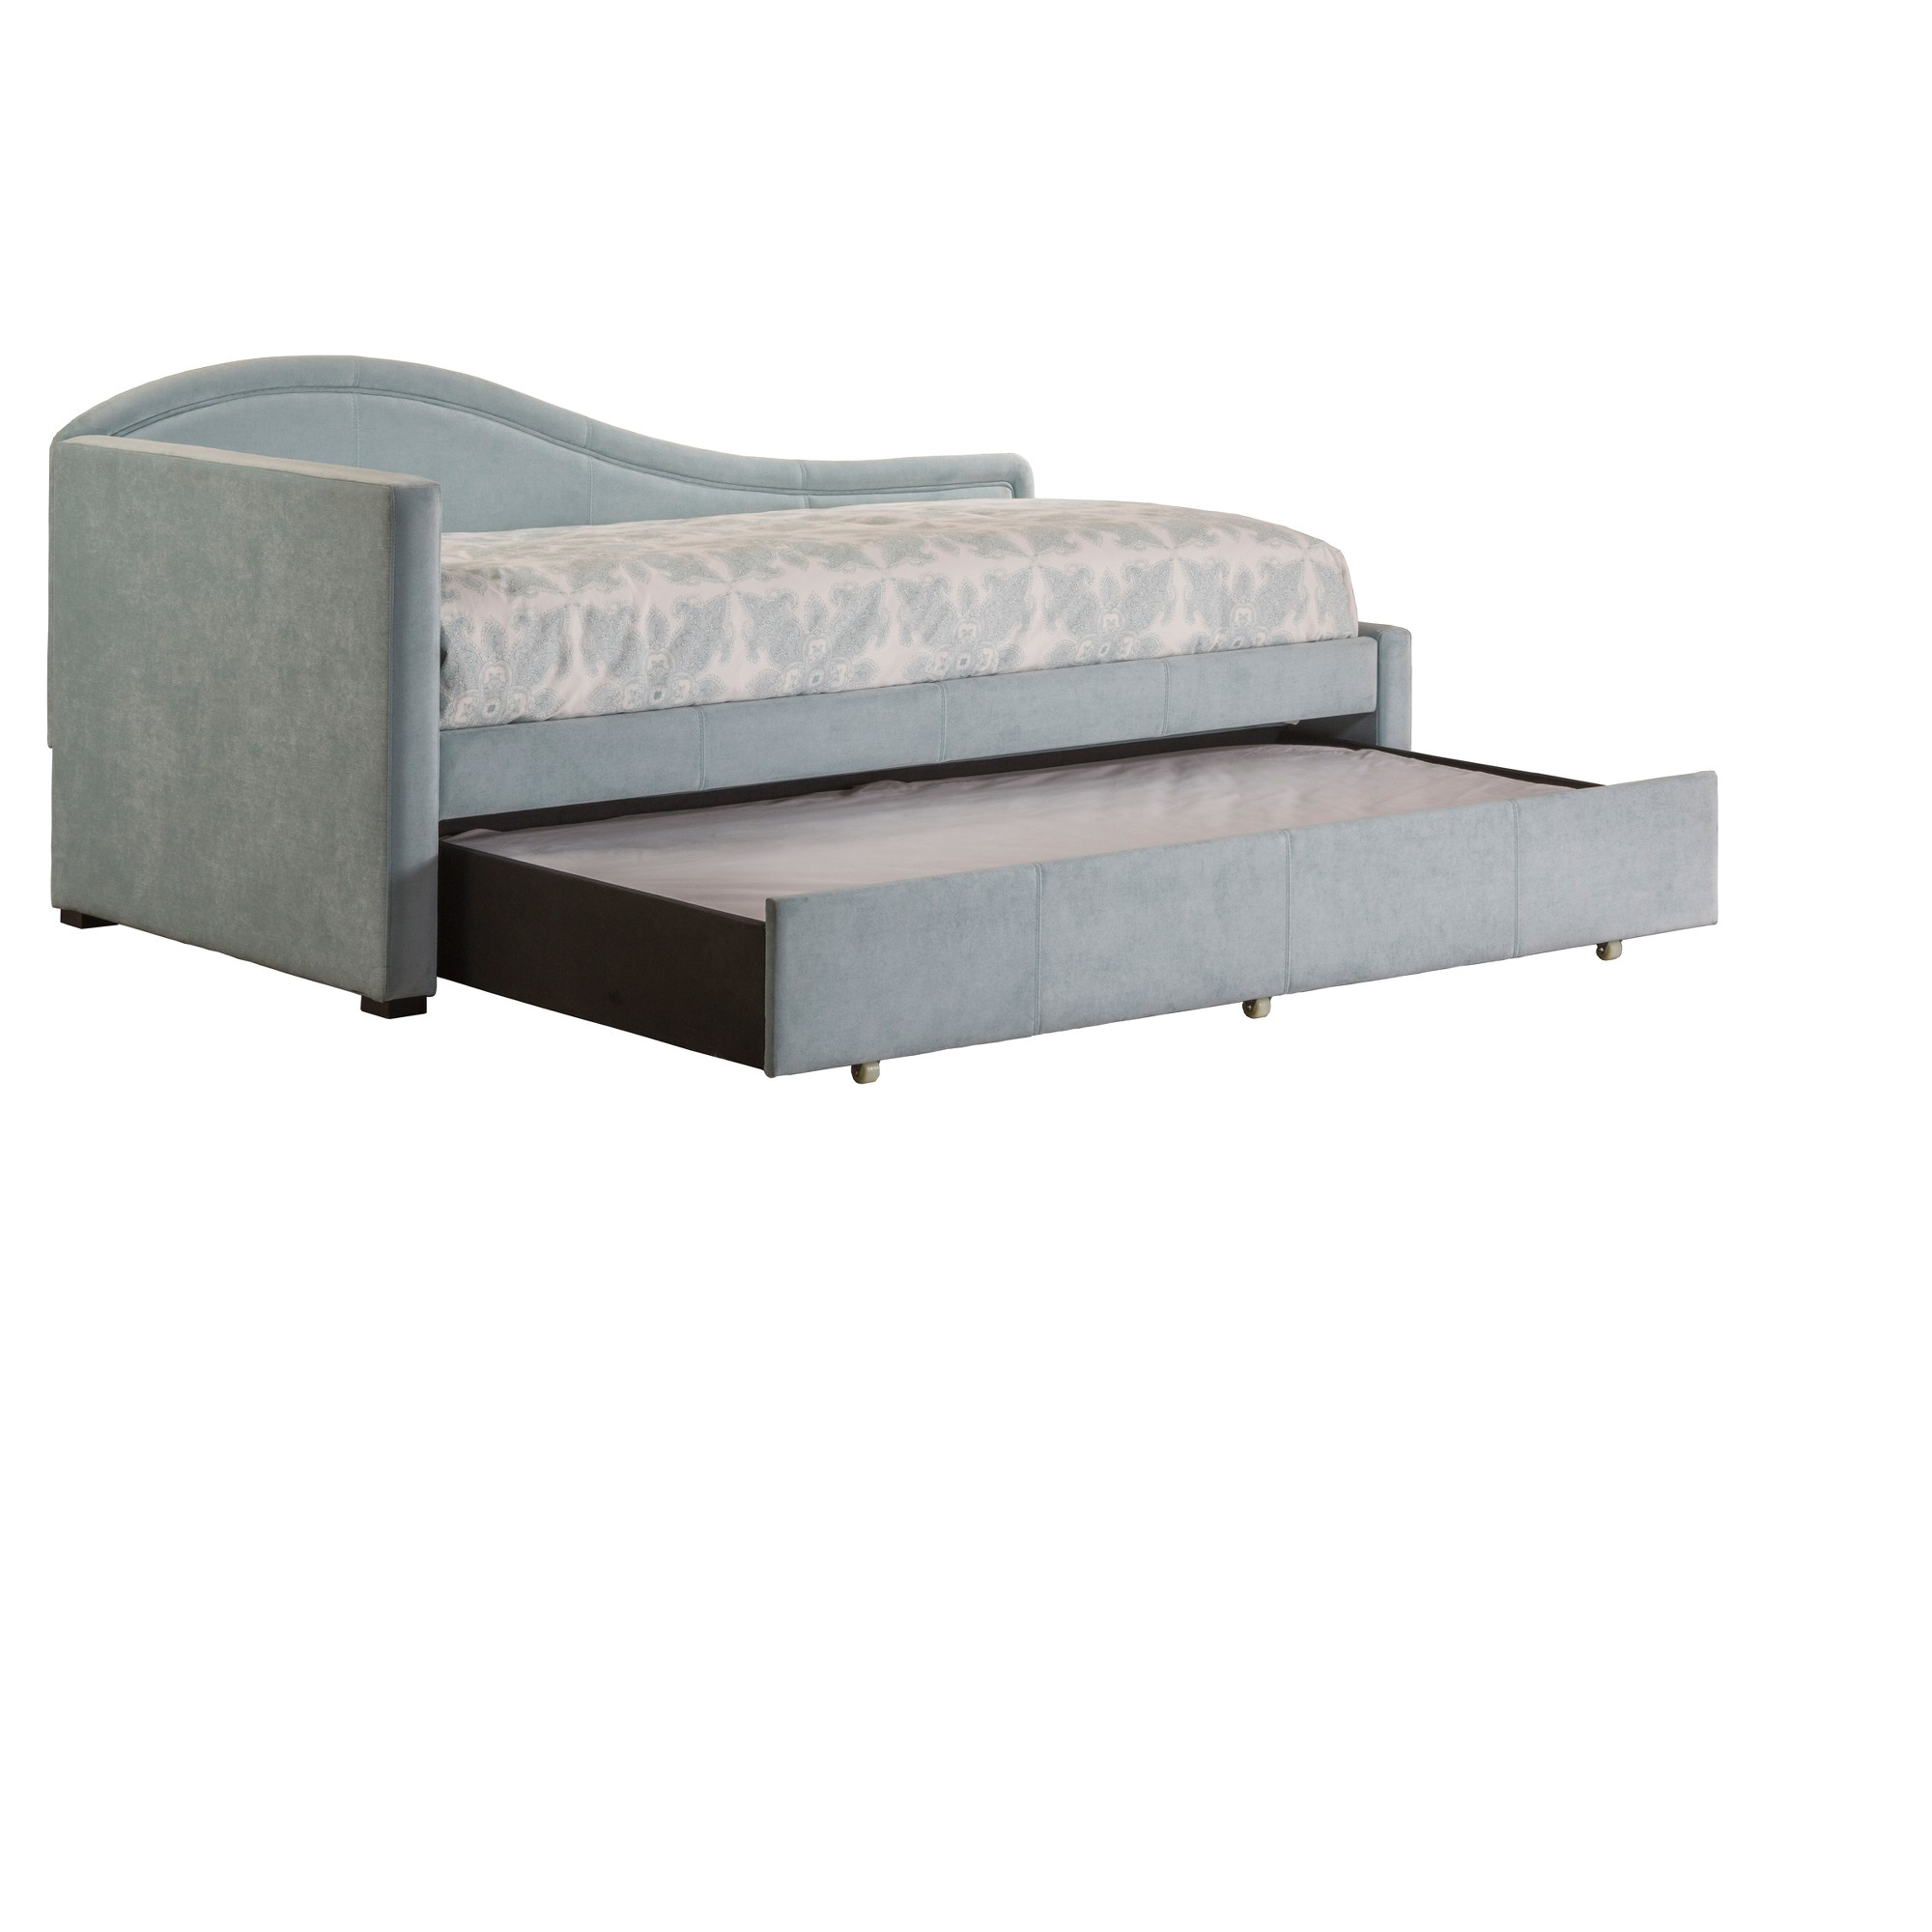 olivia daybed with trundle twin aqua blue hillsdale furniture light gray nep